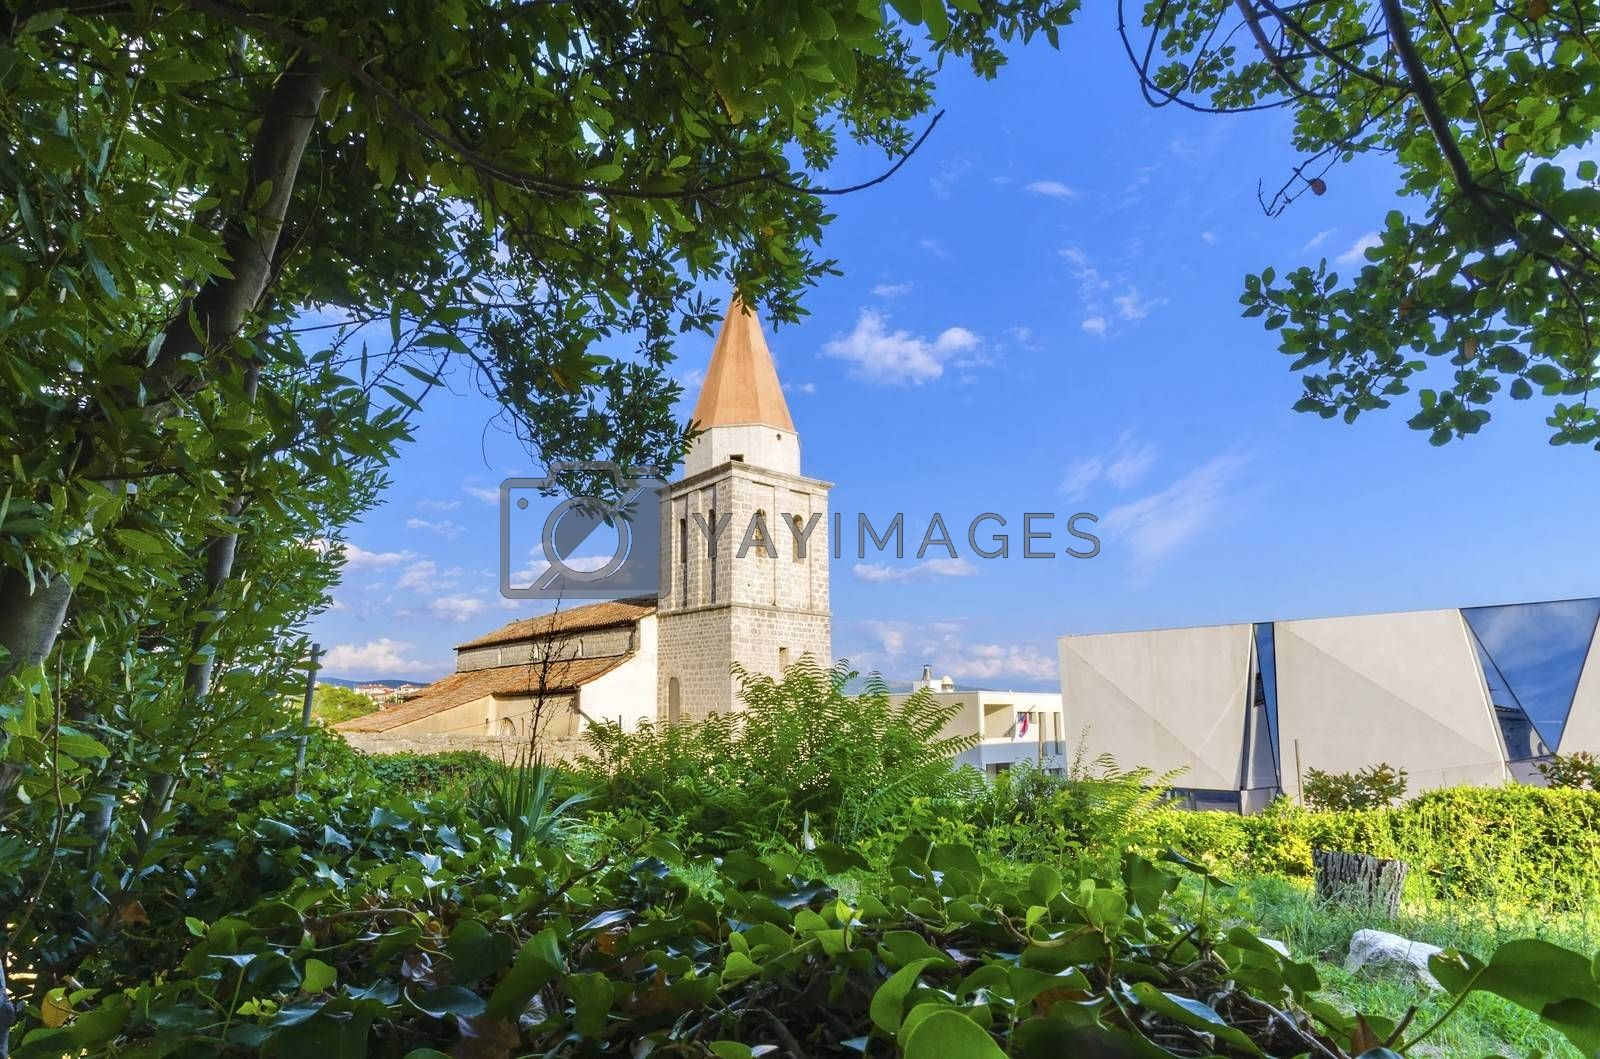 The pyramidal tower of the Church of our Lady of Health, a romanesque cathedral formerly named St Michael the archangel, basilica at the Square of the The Glagolitic housed monasteries on Krk island, in Croatia and the elementary school mirrors.